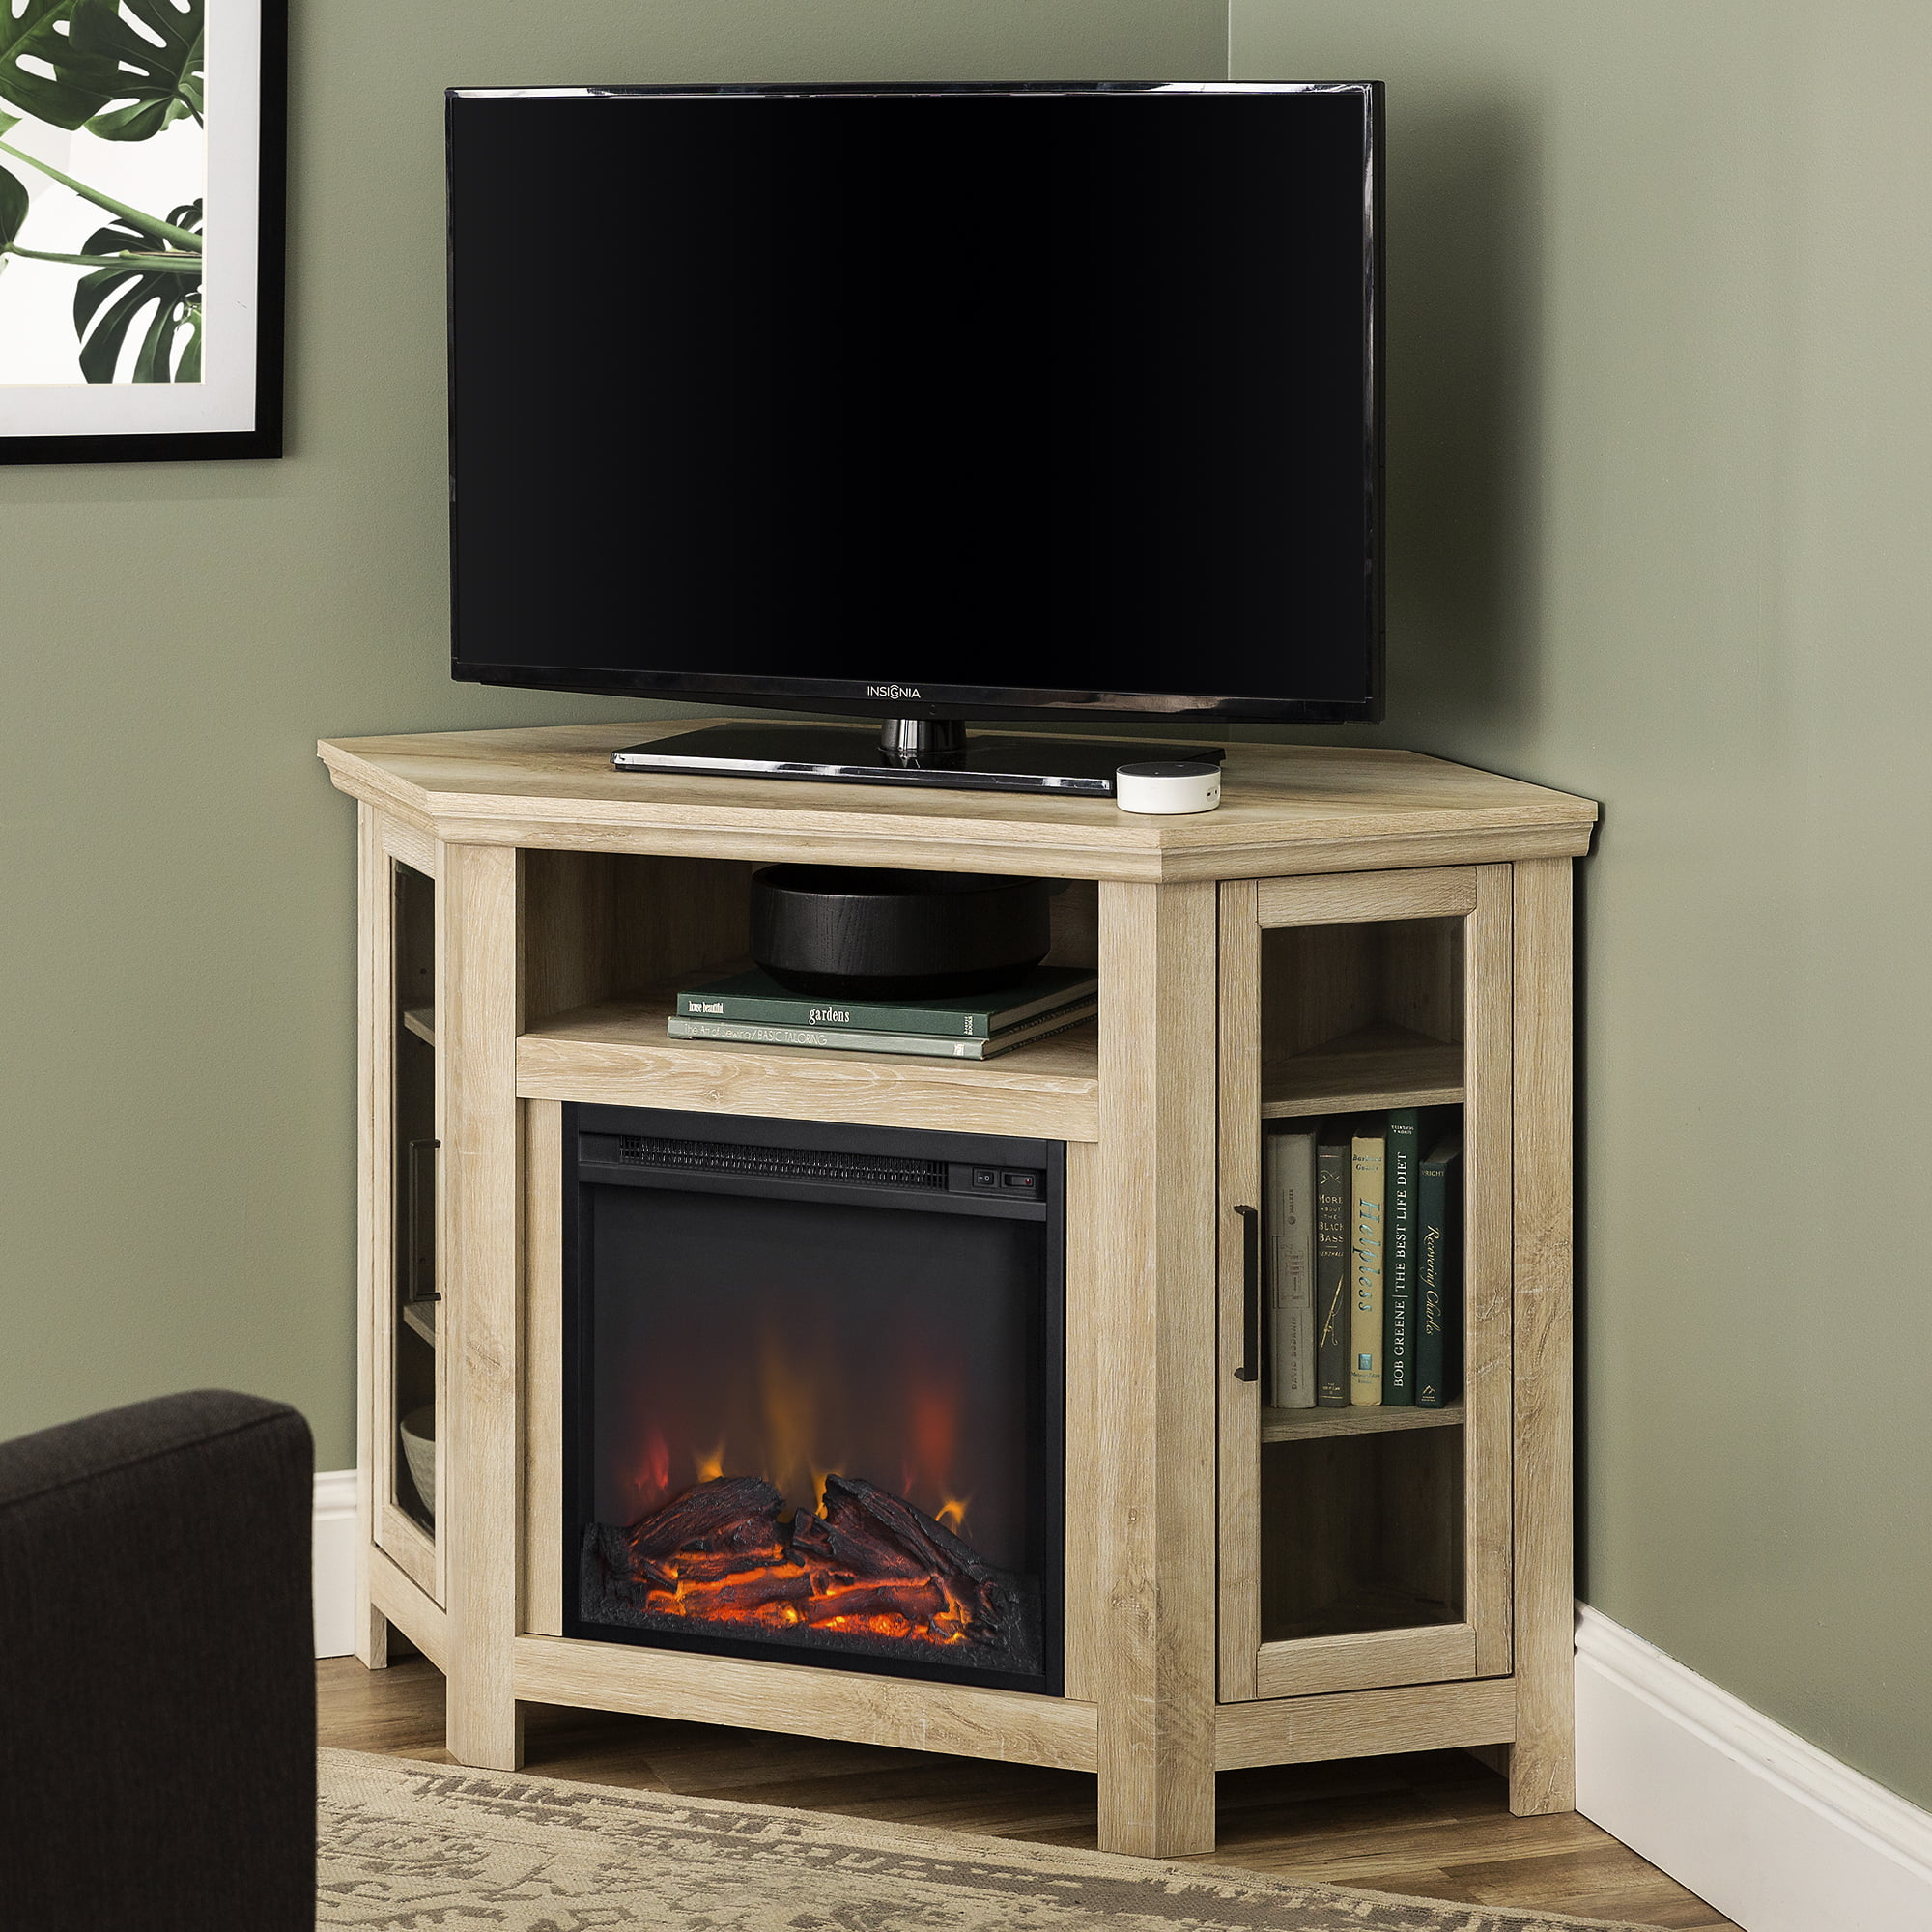 Walker Edison White Oak Corner Fireplace TV Stand for TVs up to 50